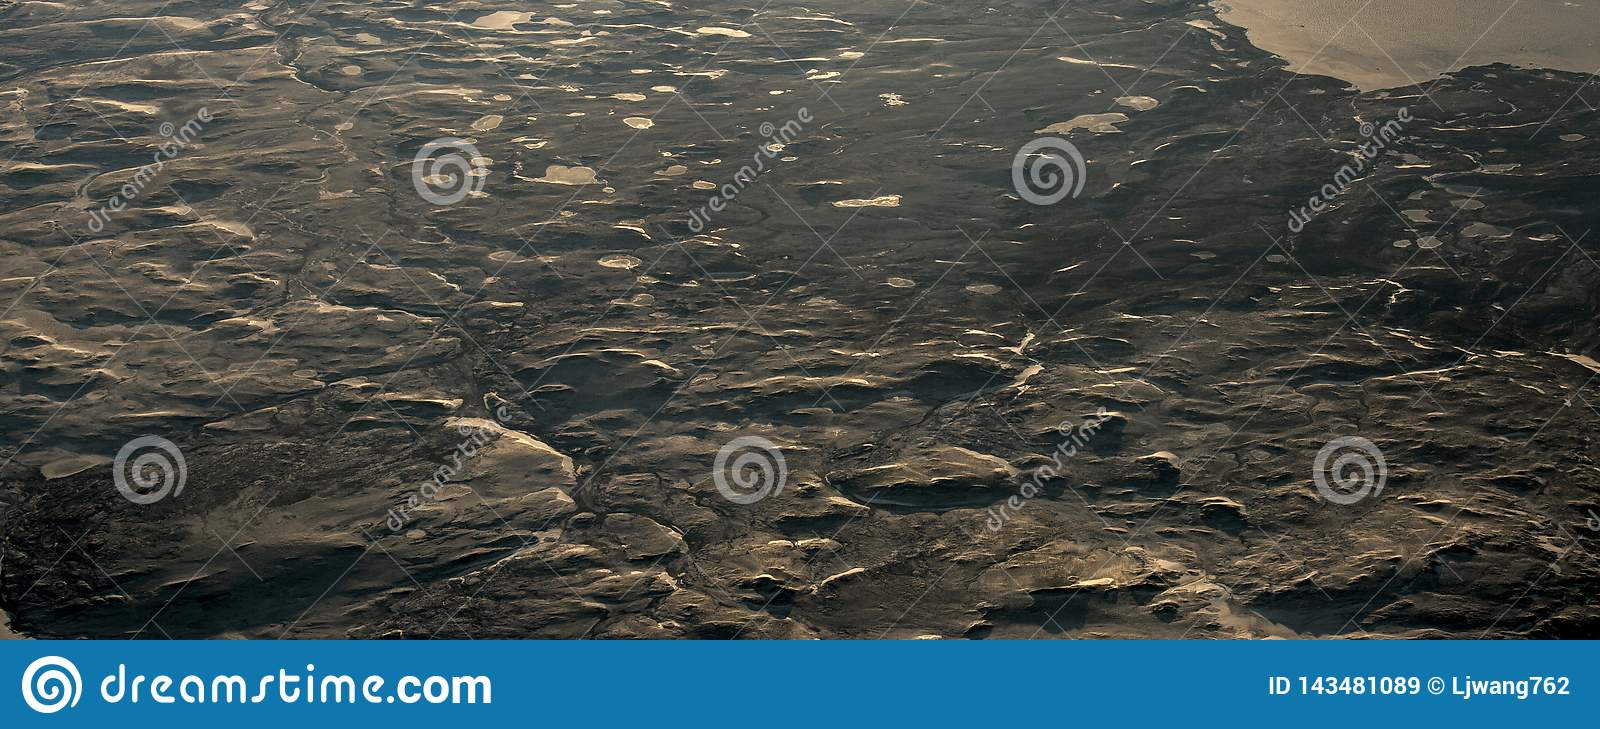 15Take an aerial view of the ice and sunrise over the bering strait.(1)